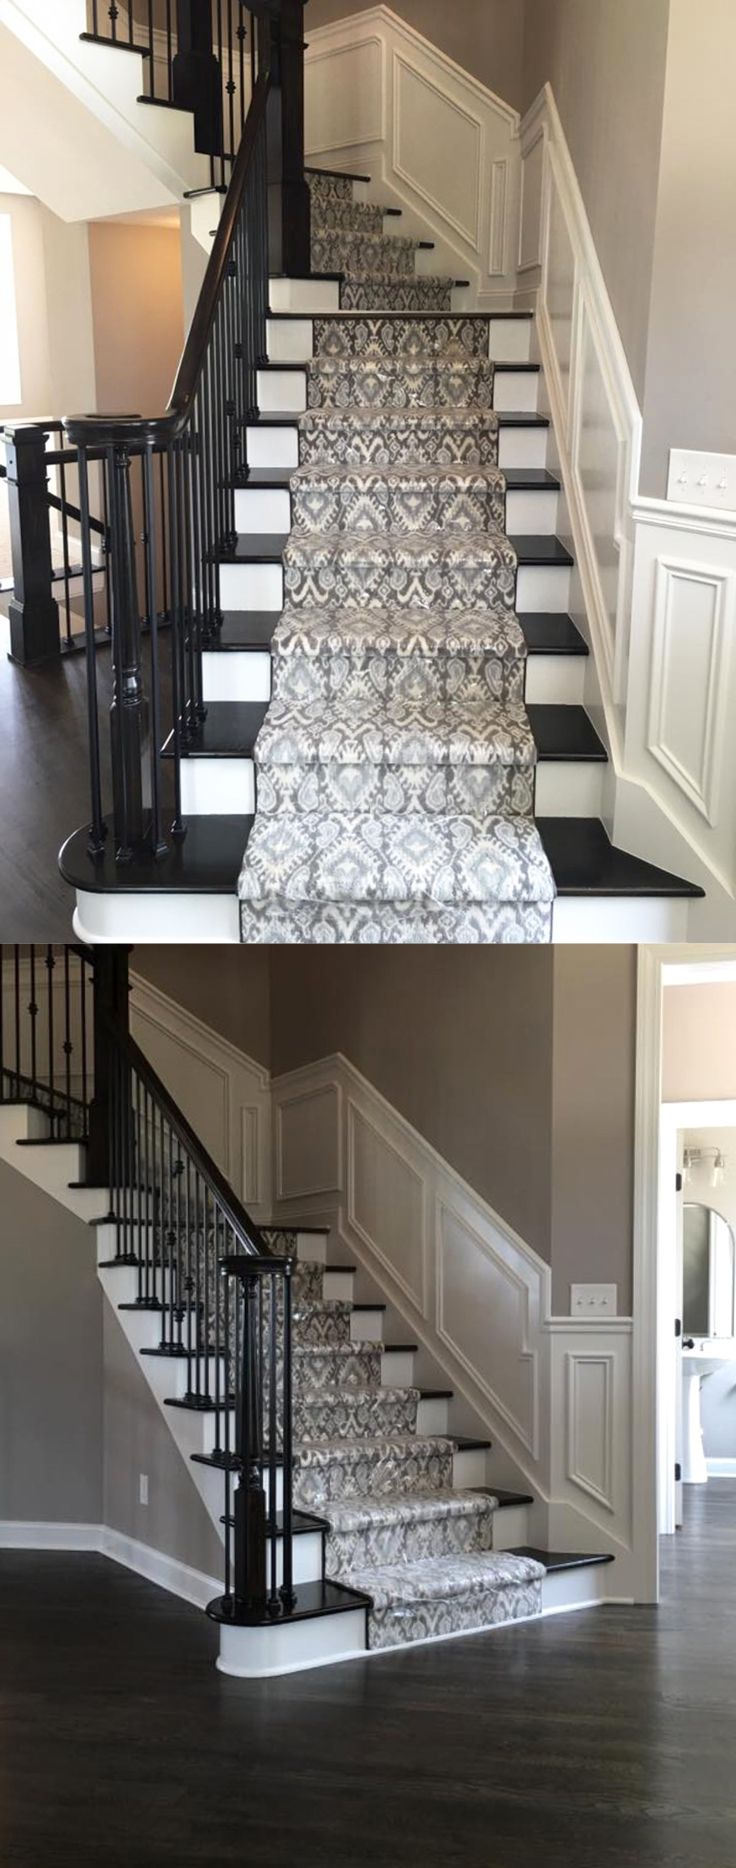 416 Best Stair Runners Images On Pinterest Stair Runners | Best Rug For Stairs